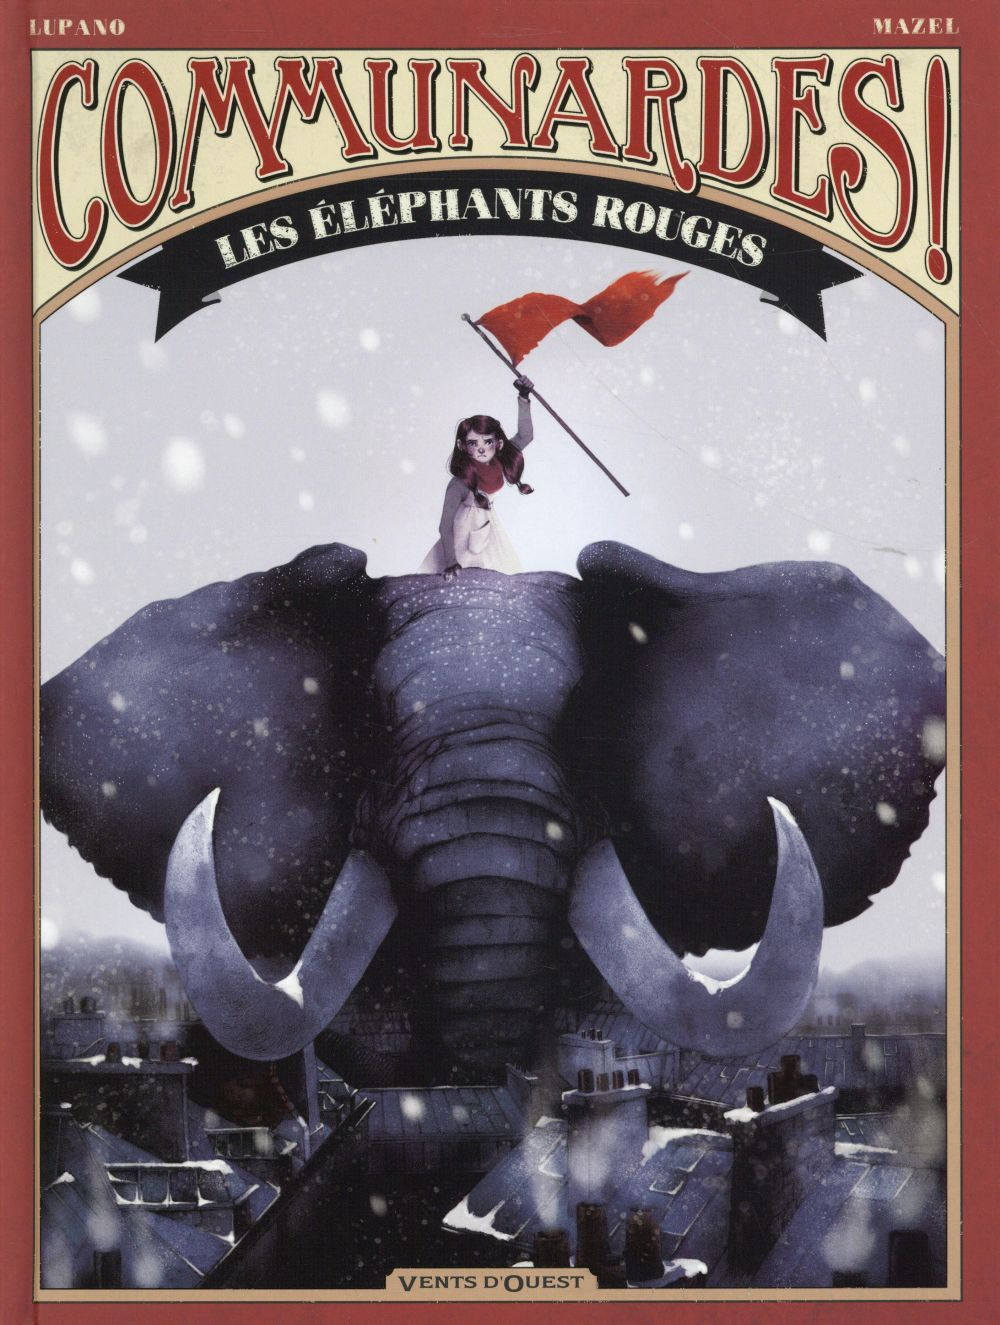 COMMUNARDES !  -  LES ELEPHANTS ROUGES